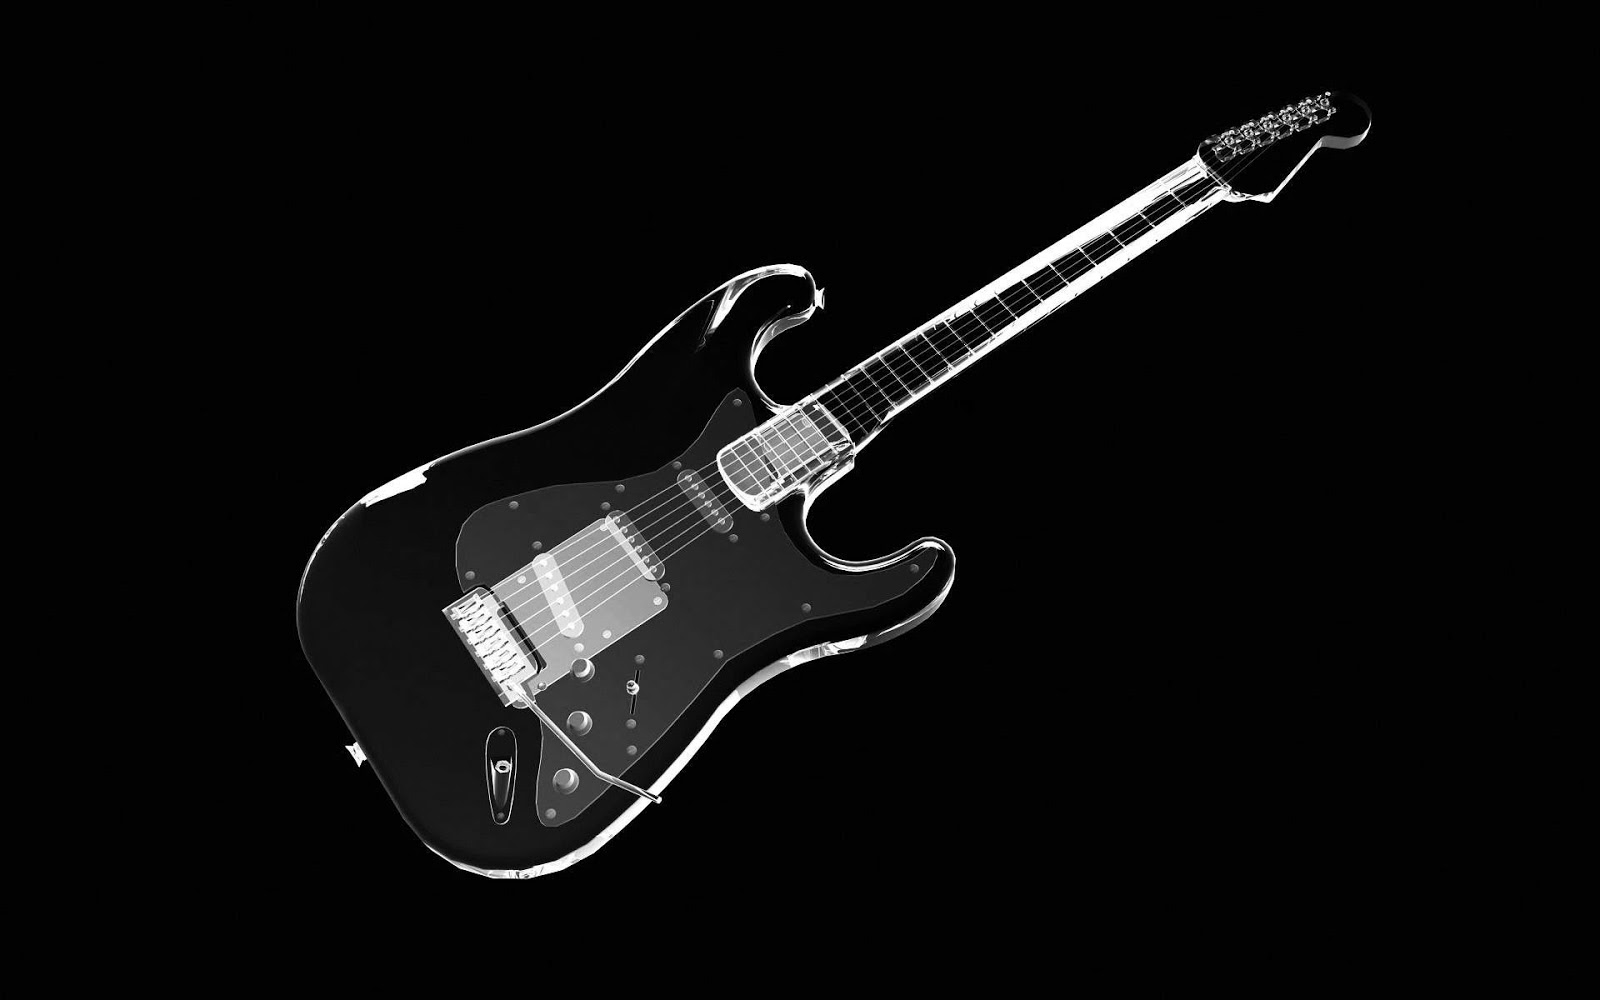 Black and White Wallpapers Black White Guitar   Black and 1600x1000